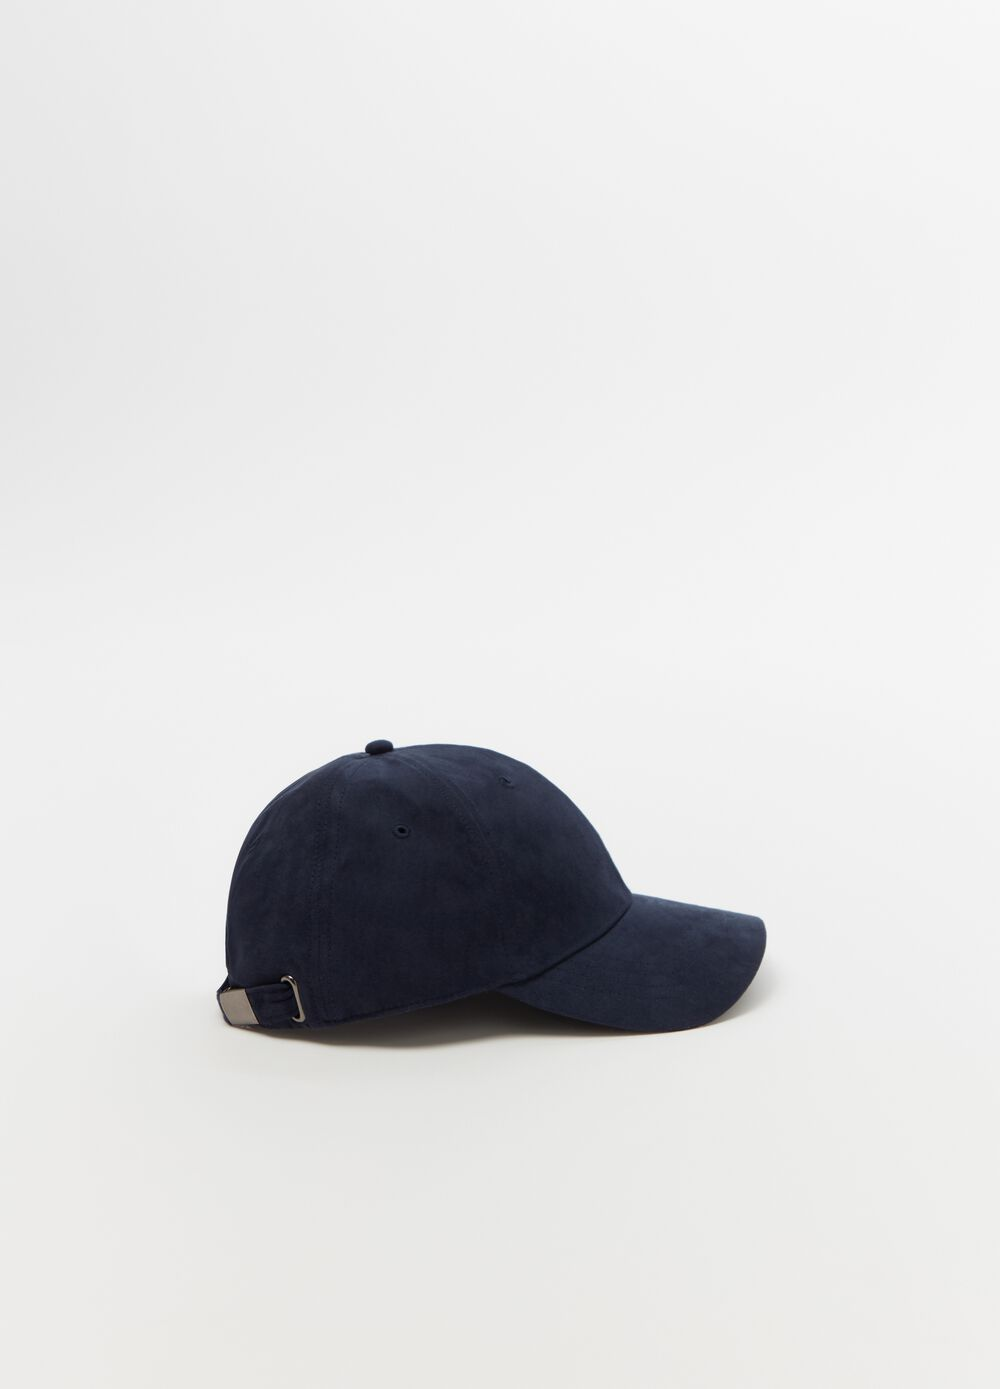 Baseball cap with strap